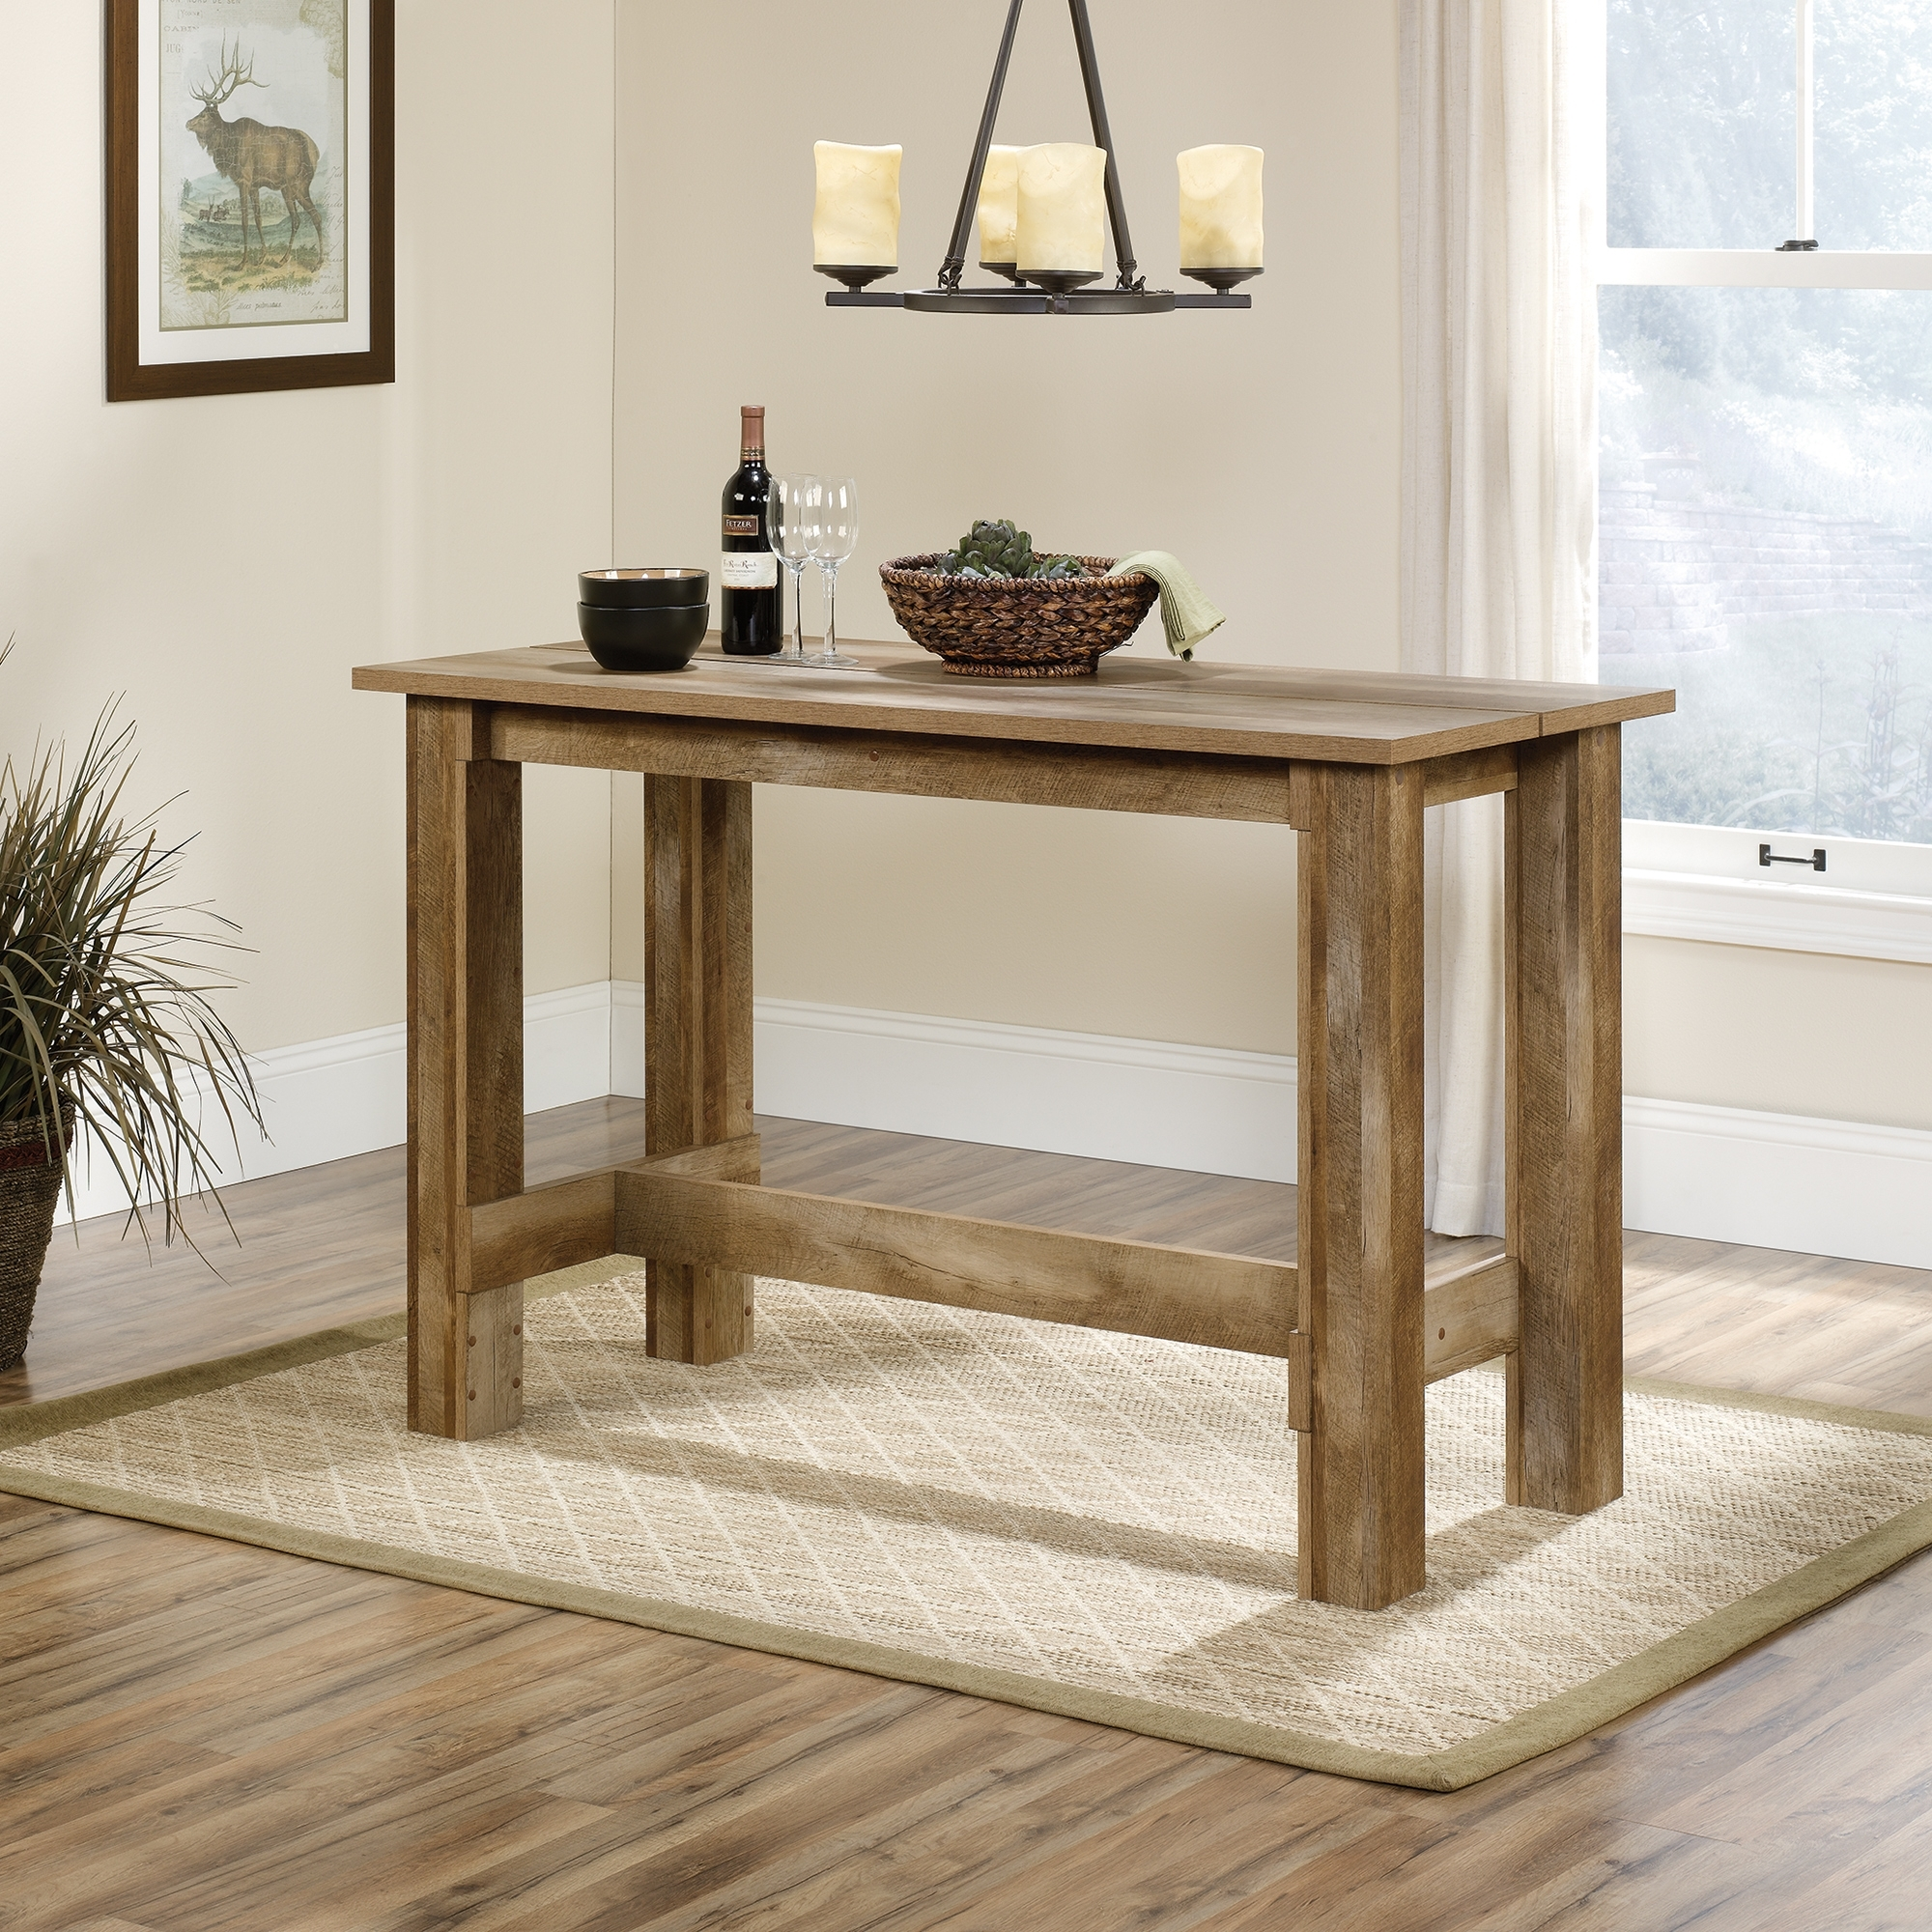 Boone Mountain Counter  Height Dinette Table (416698) – Sauder With Most Popular Craftsman Rectangle Extension Dining Tables (Image 4 of 20)